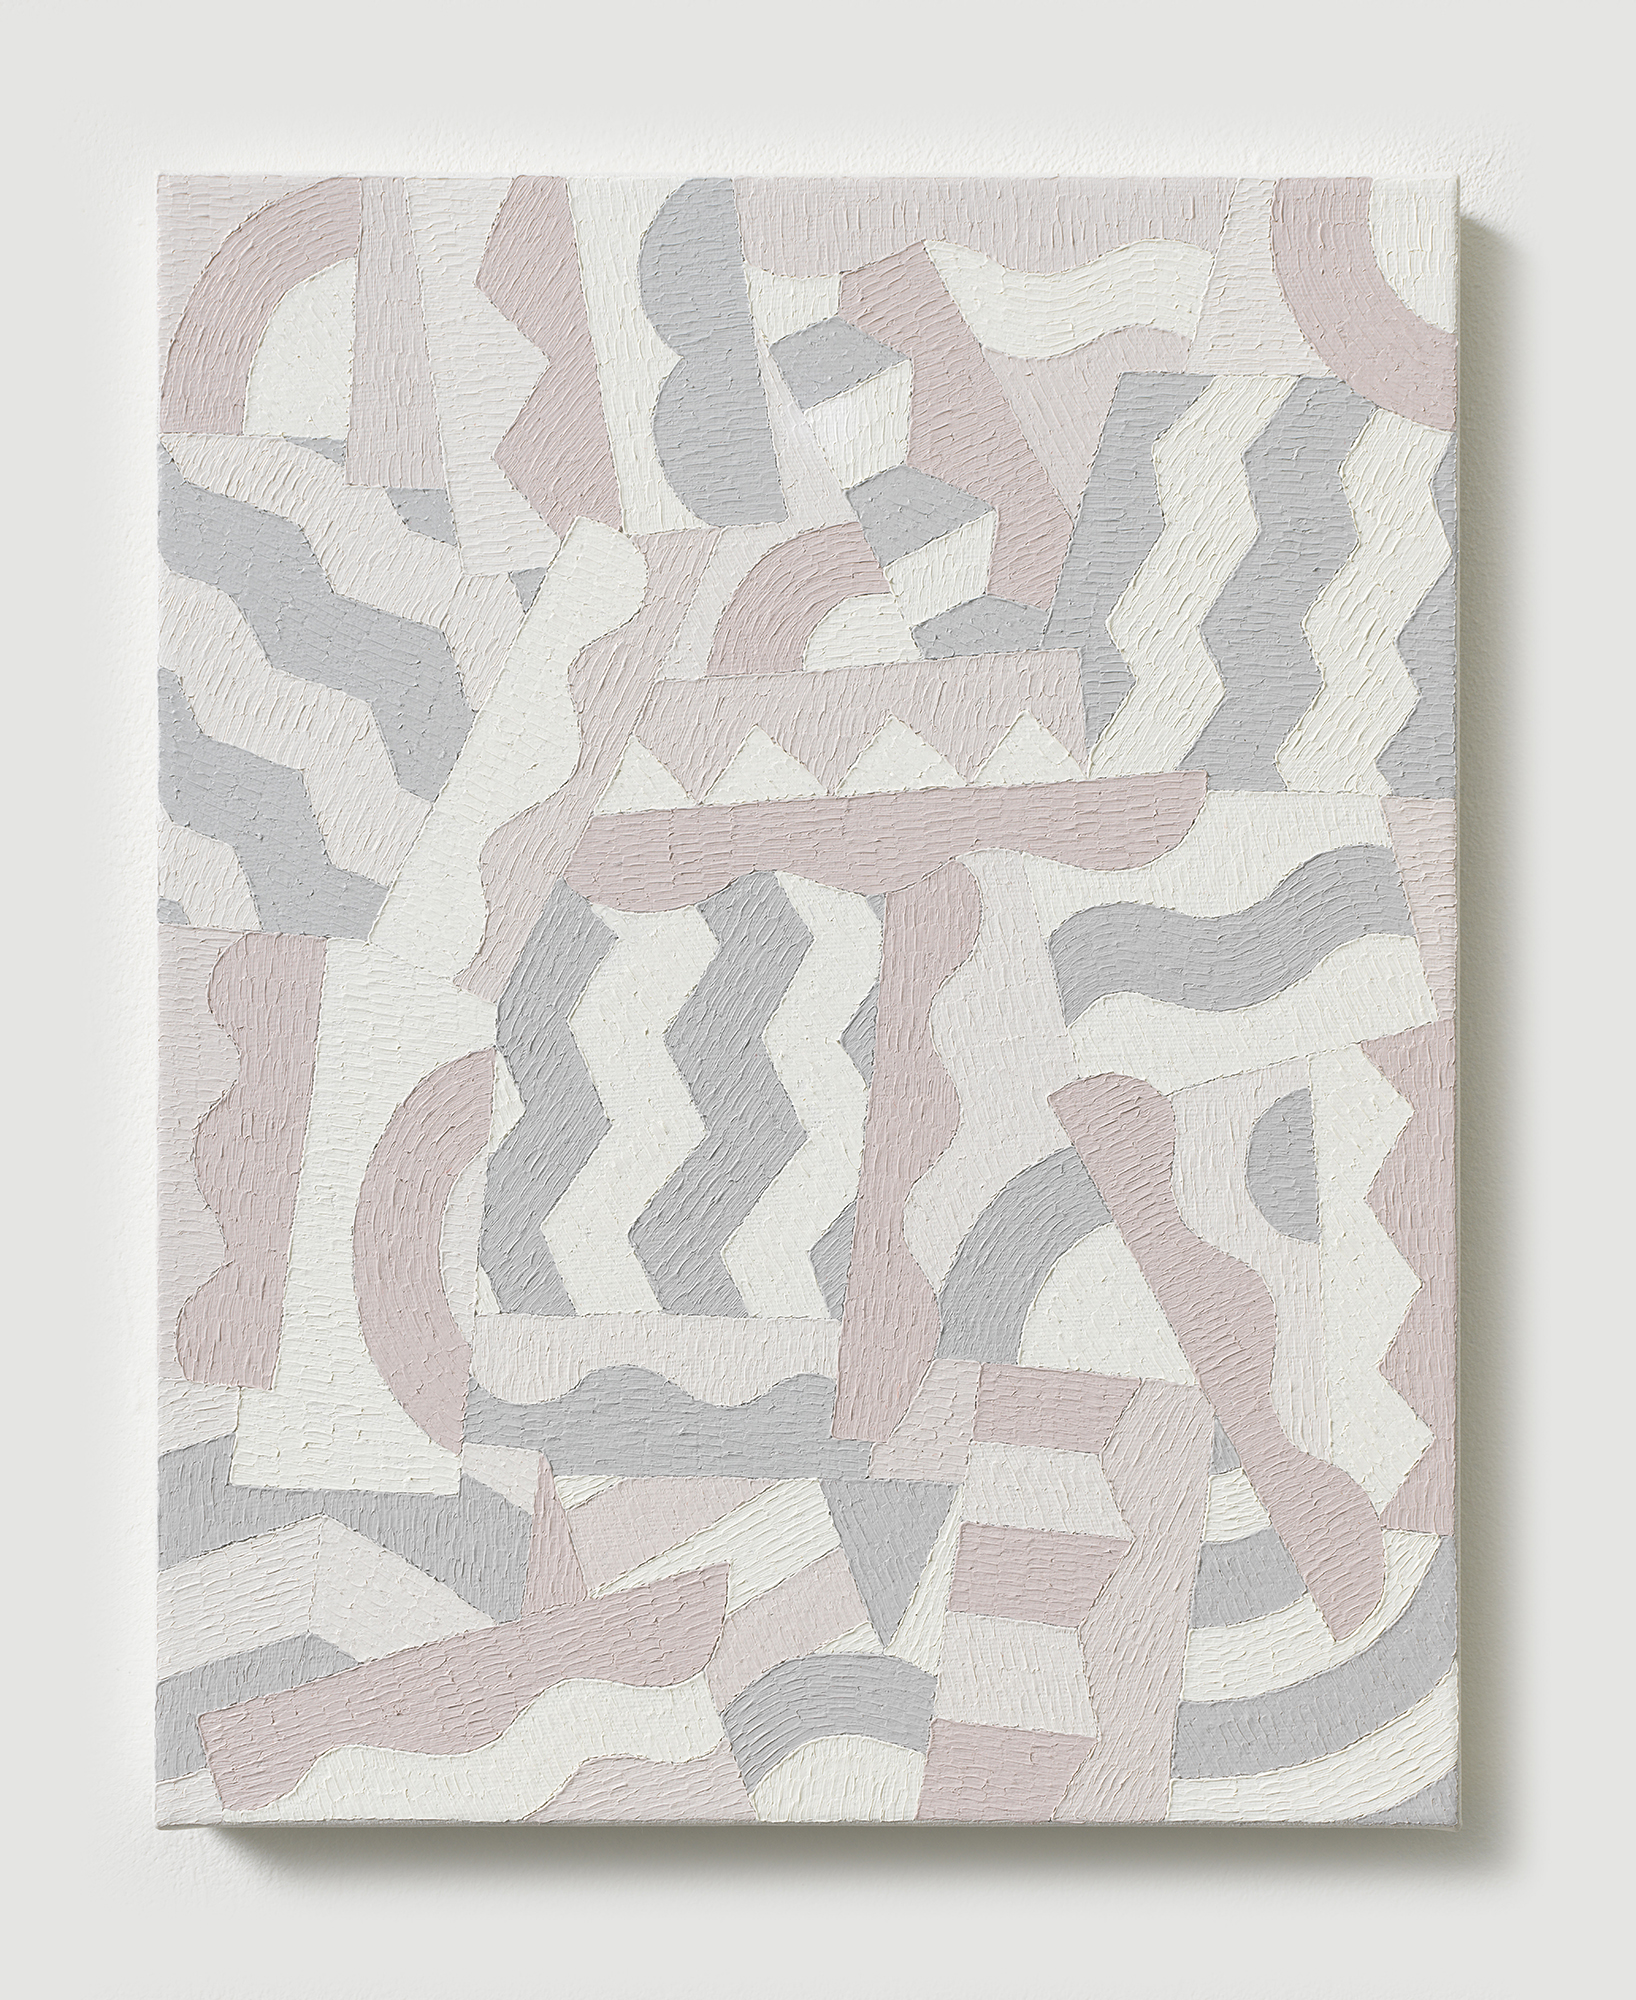 Timothy Hull, Untitled Hellenism Polychrome 3, 2019